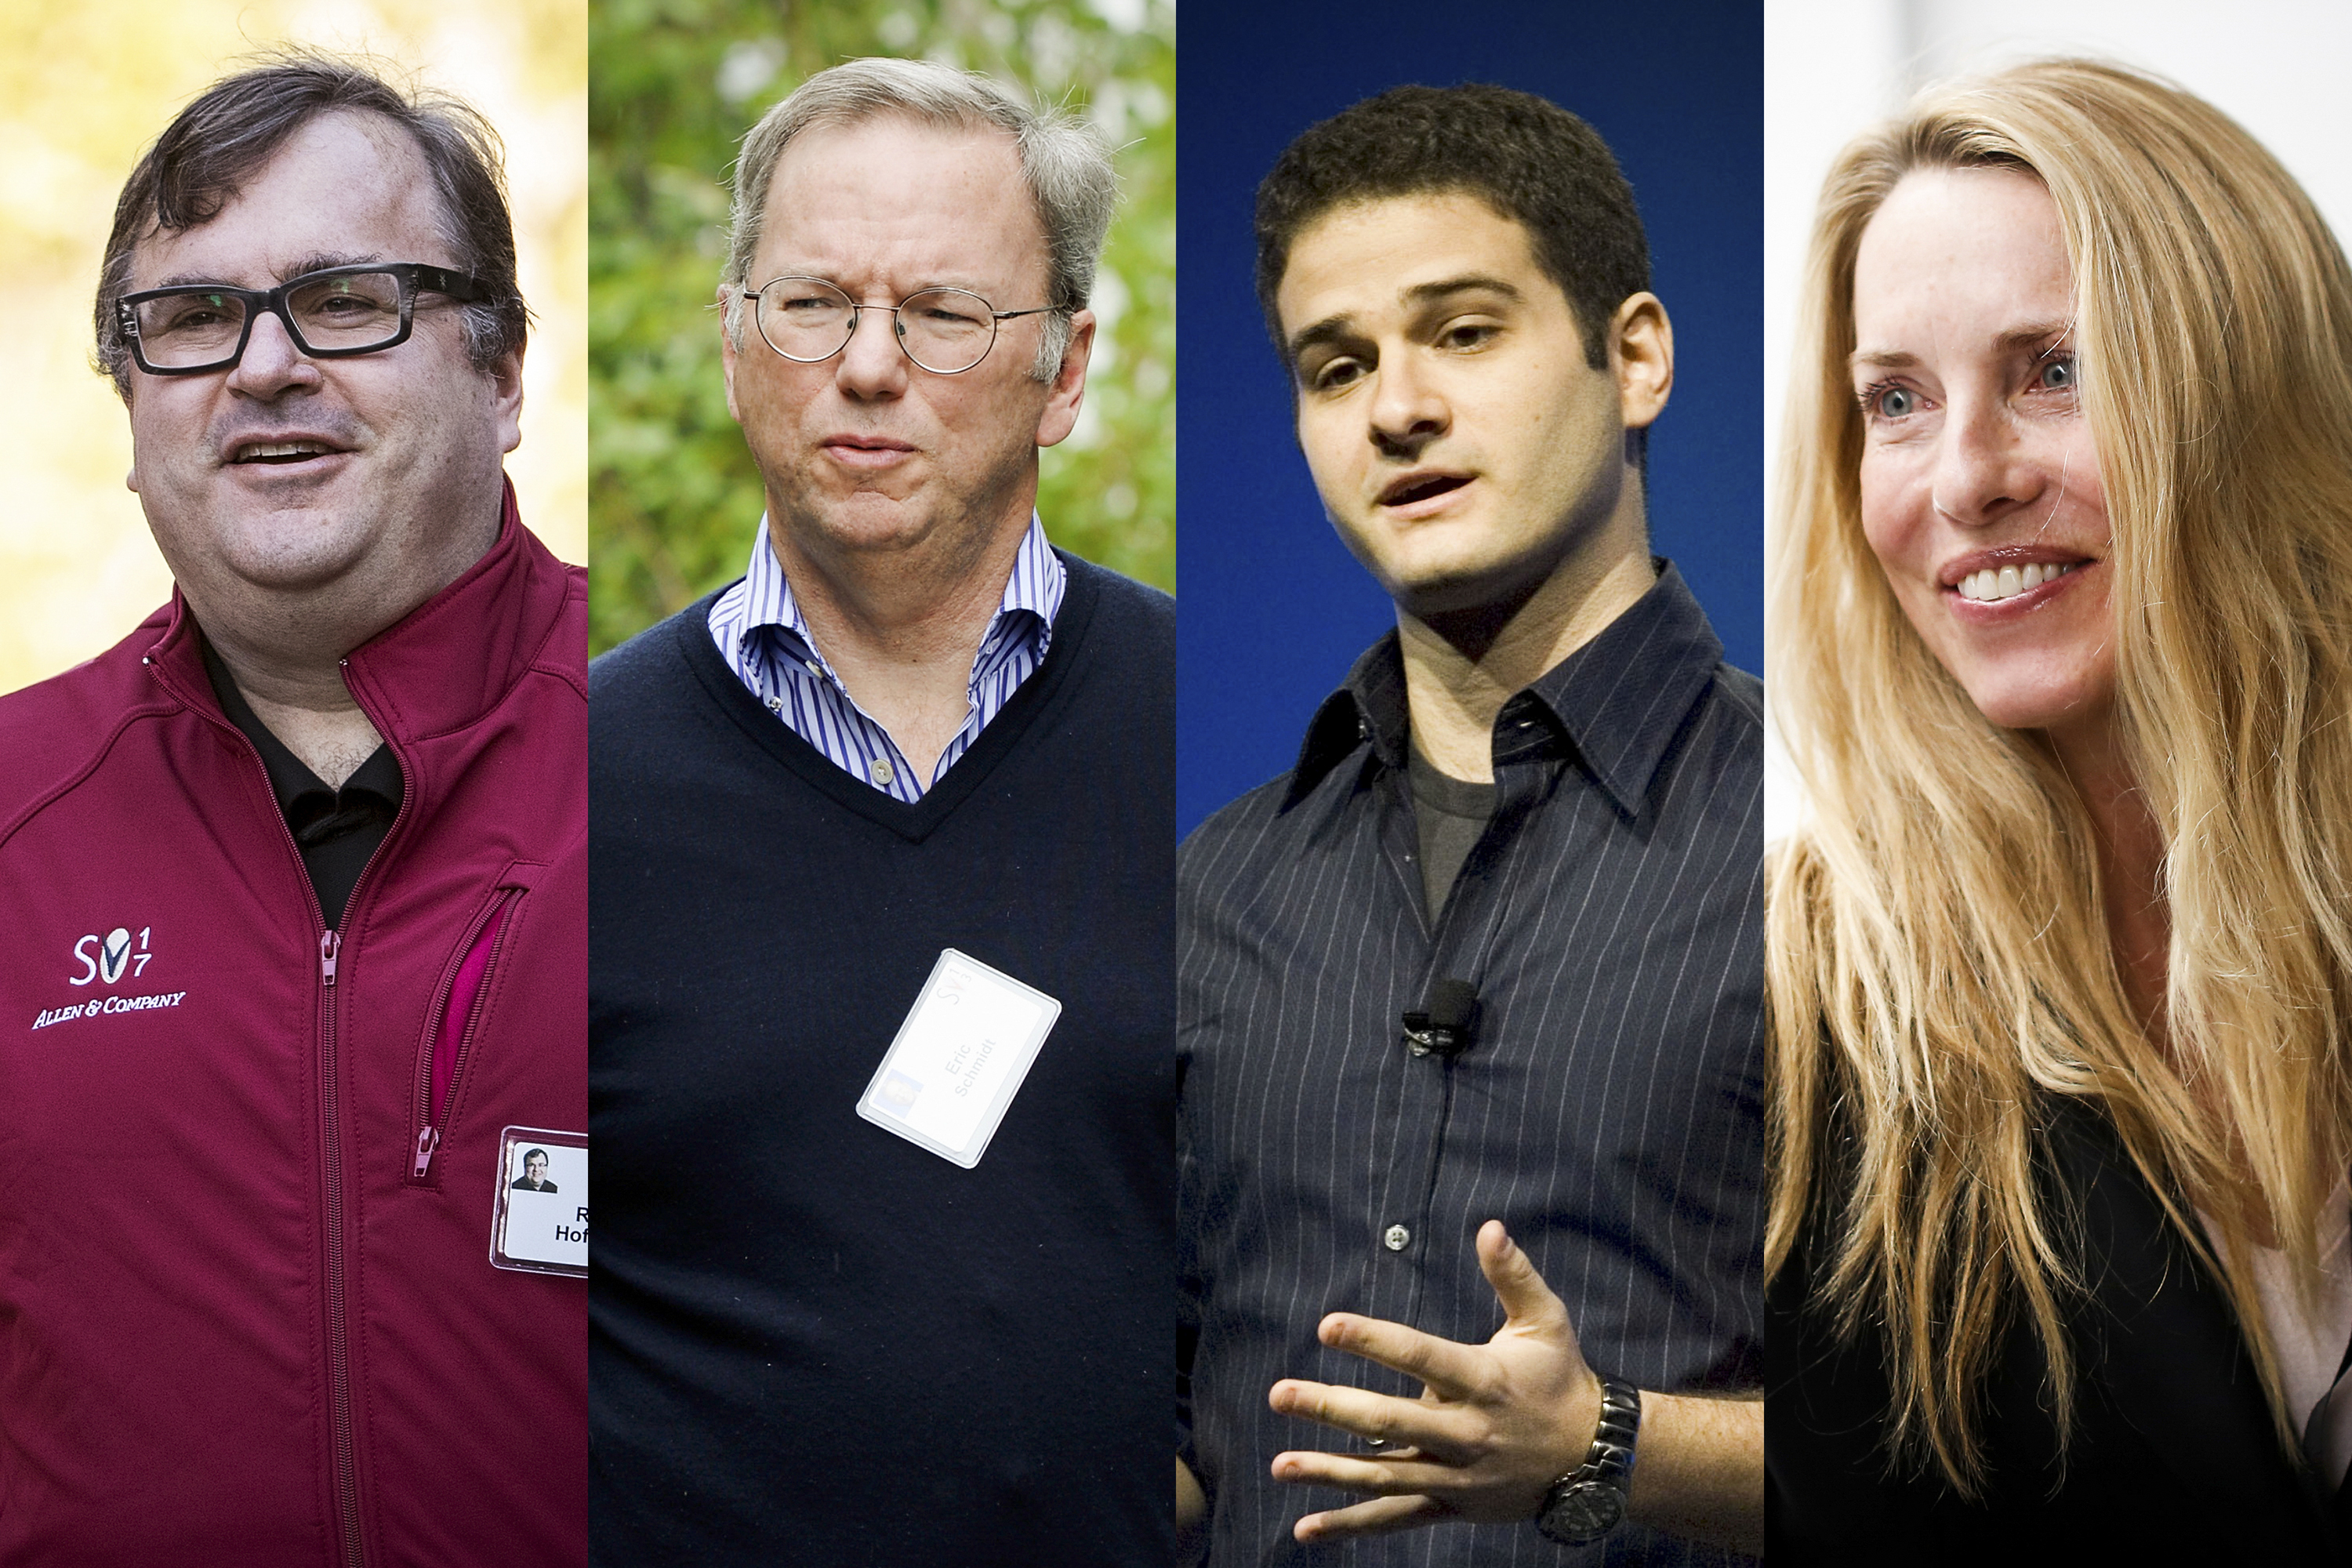 Photos of Reid Hoffman, Eric Schmidt, Dustin Moskovitz, and Laurene Powell Jobs.